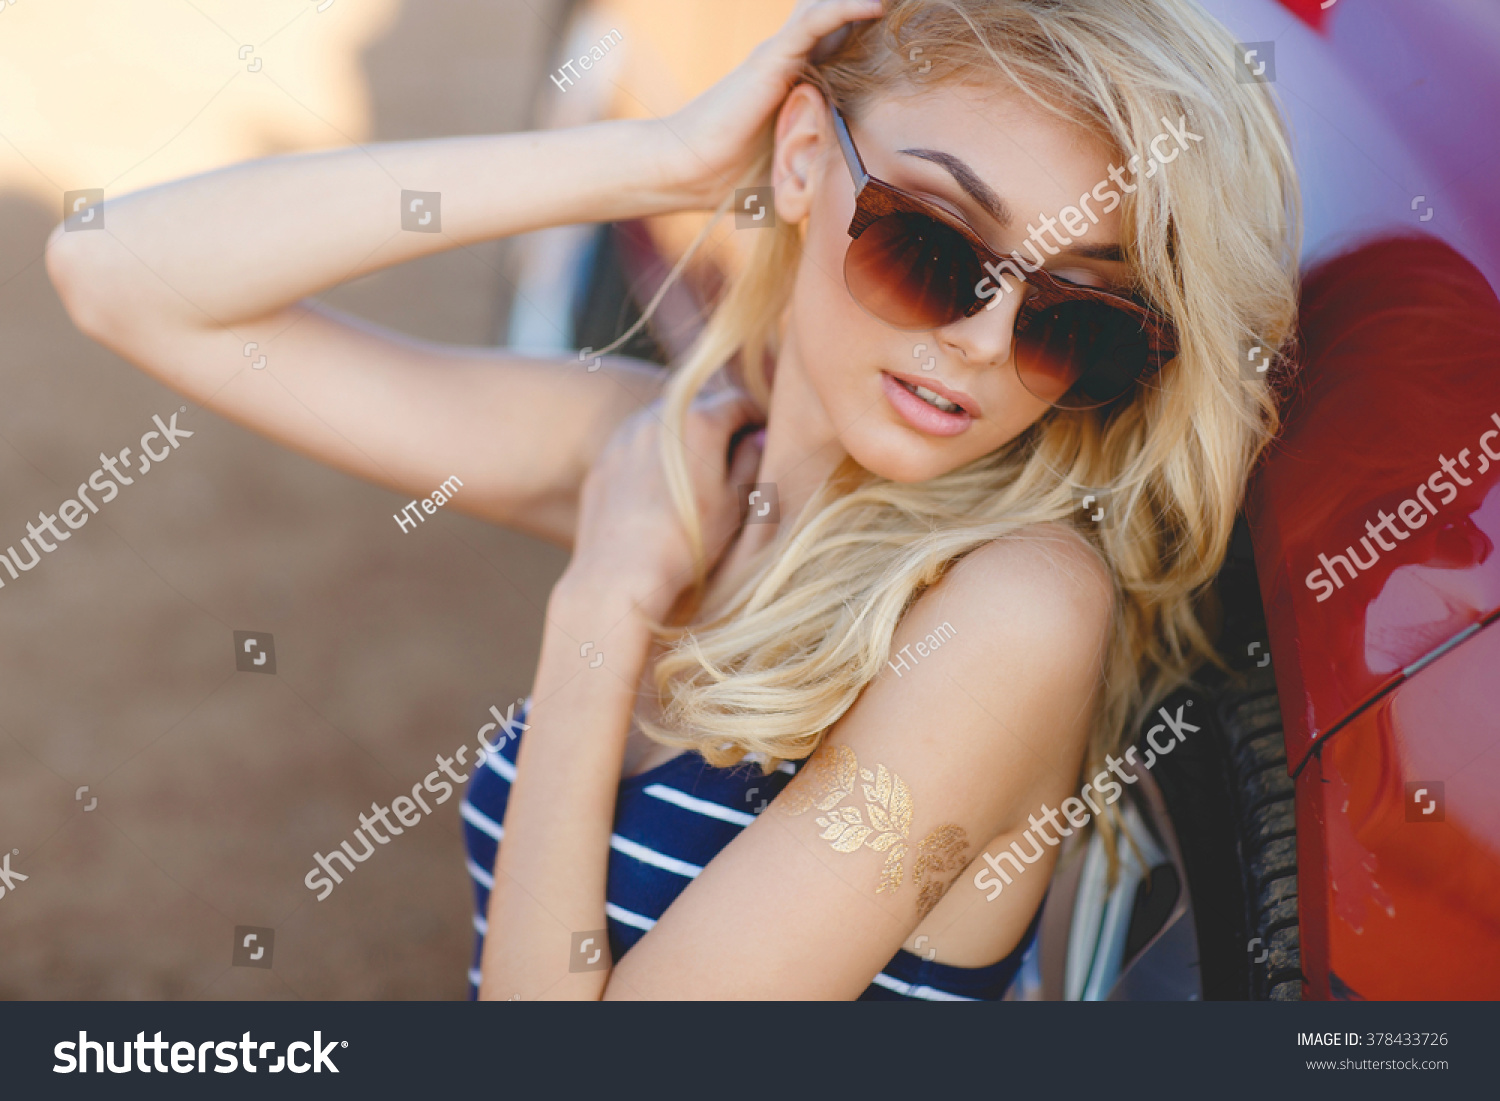 932ac87344 Beautiful young sexy woman near car outdoor. Rich hot blond slim girl with  long healthy